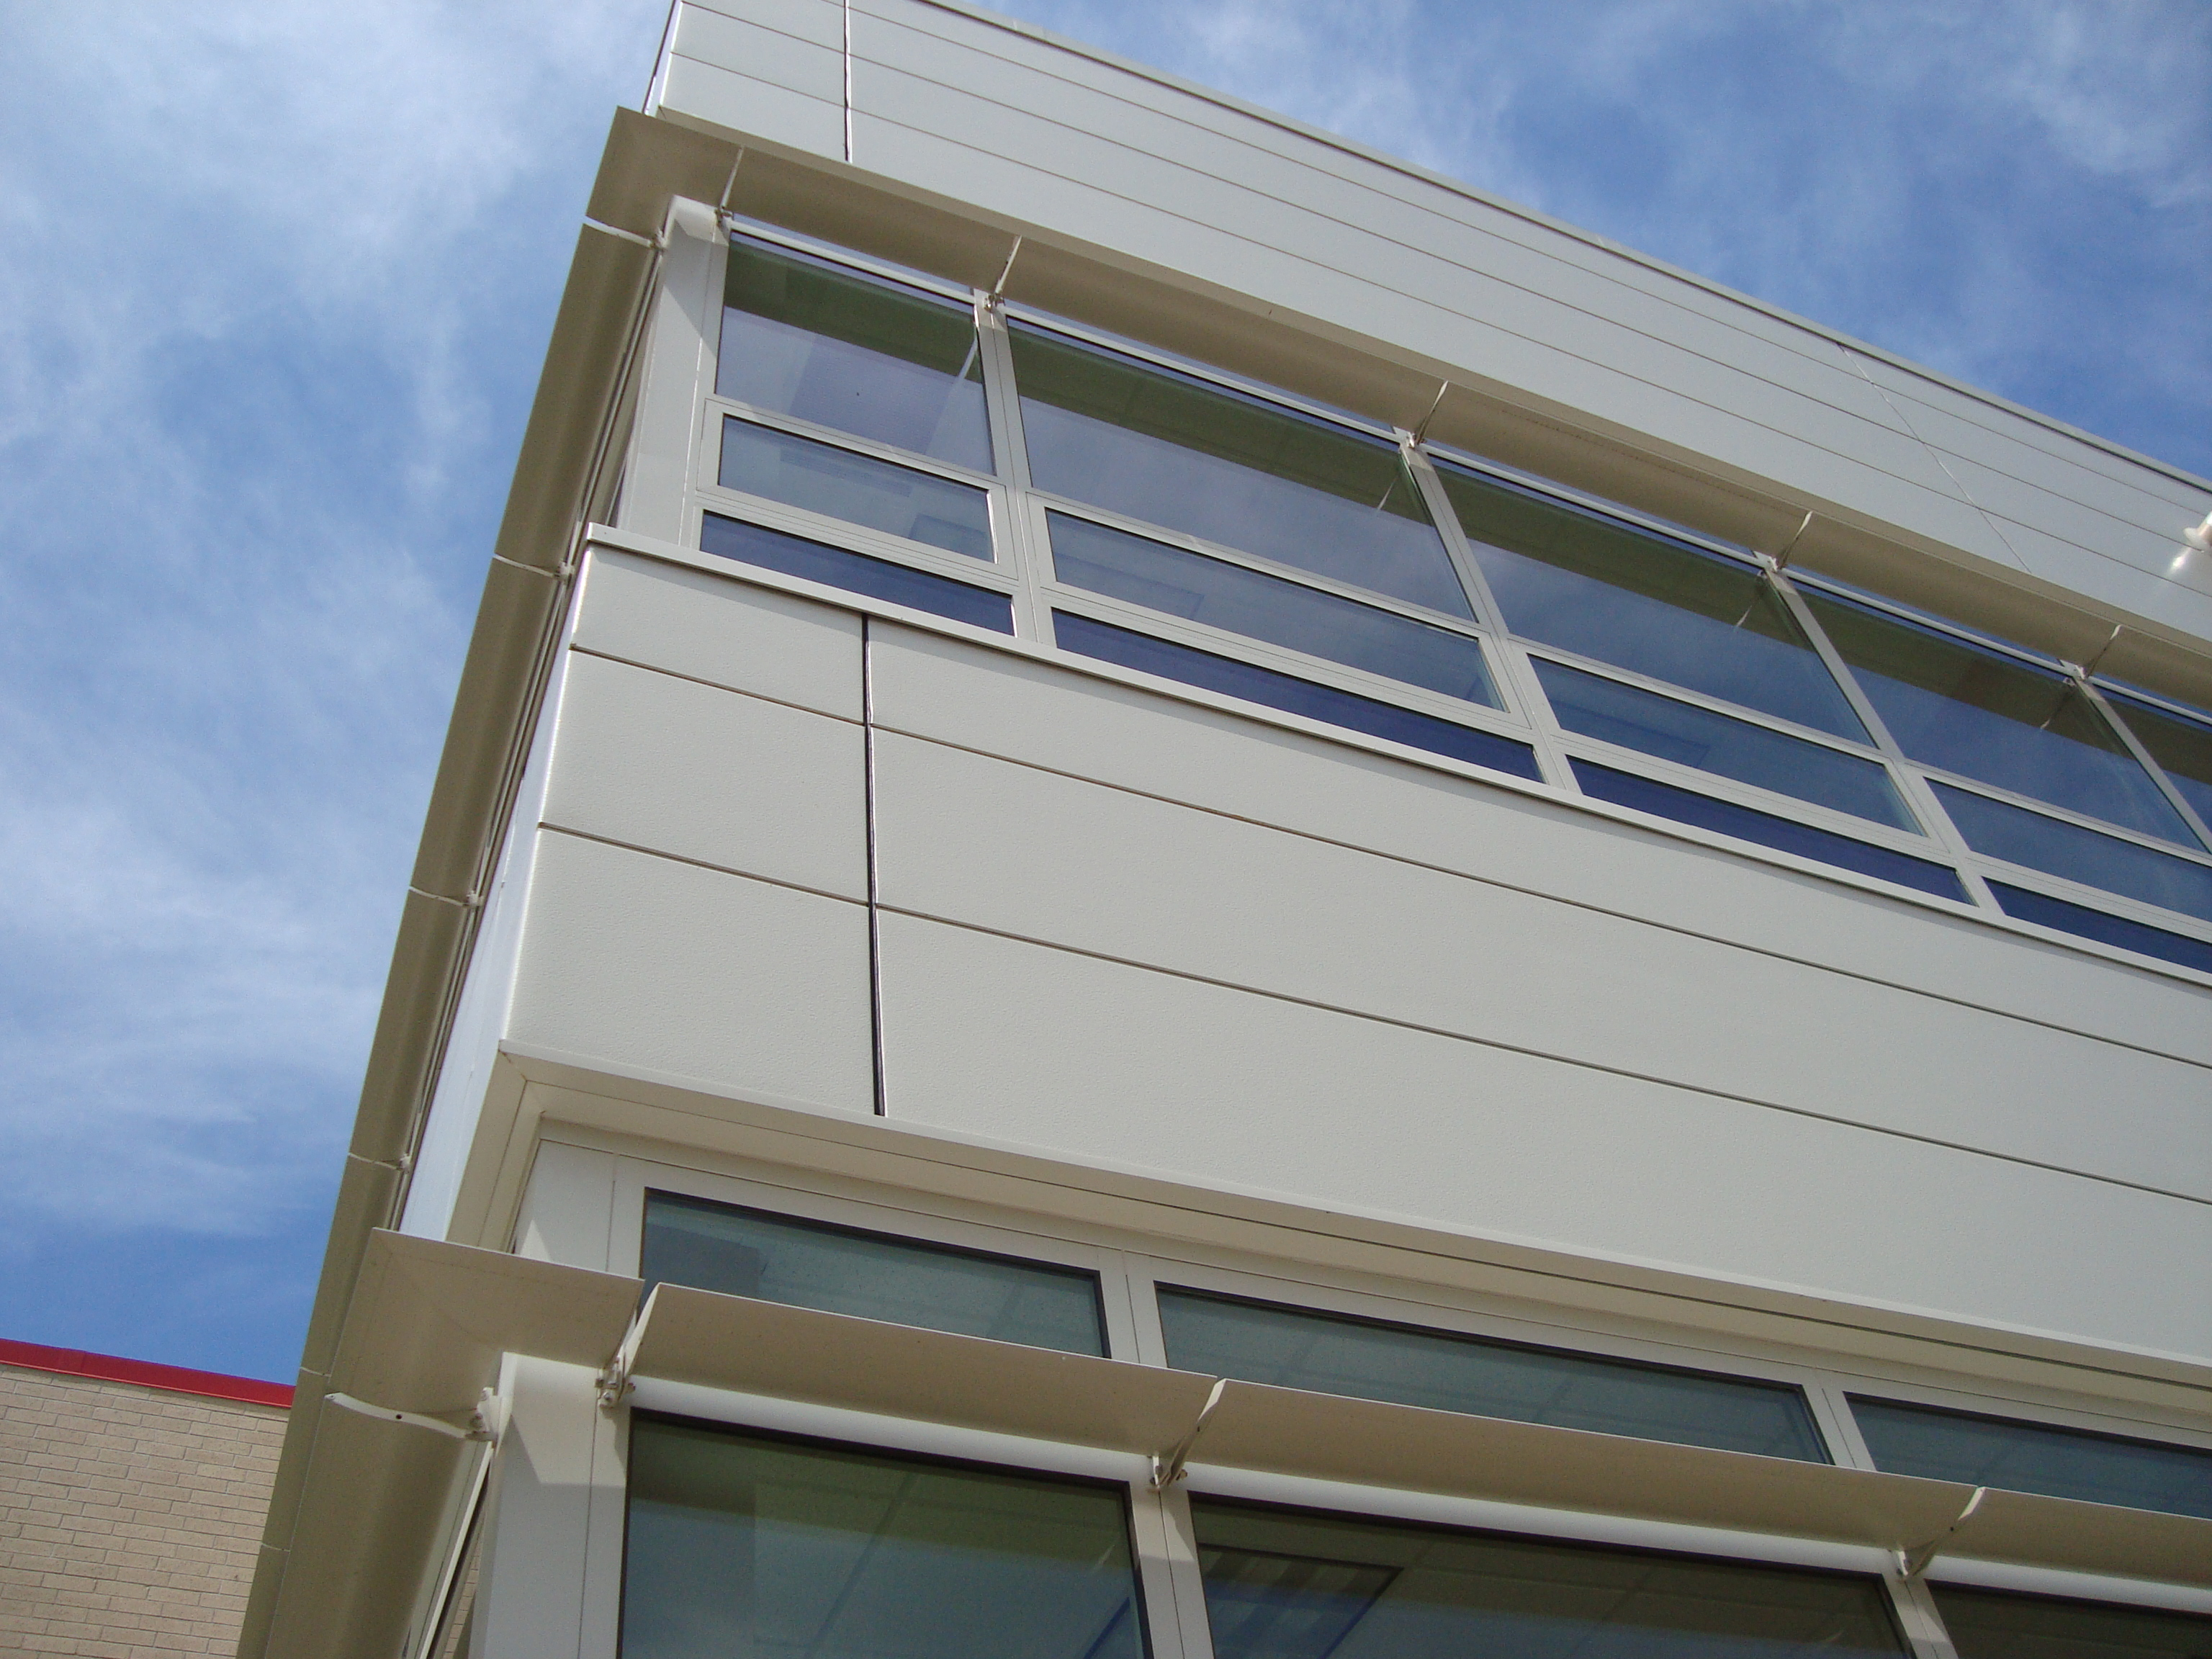 Wausau 39 S Clear Story Exterior Sun Shades And Interior Light Shelves Maximize Natural Light And